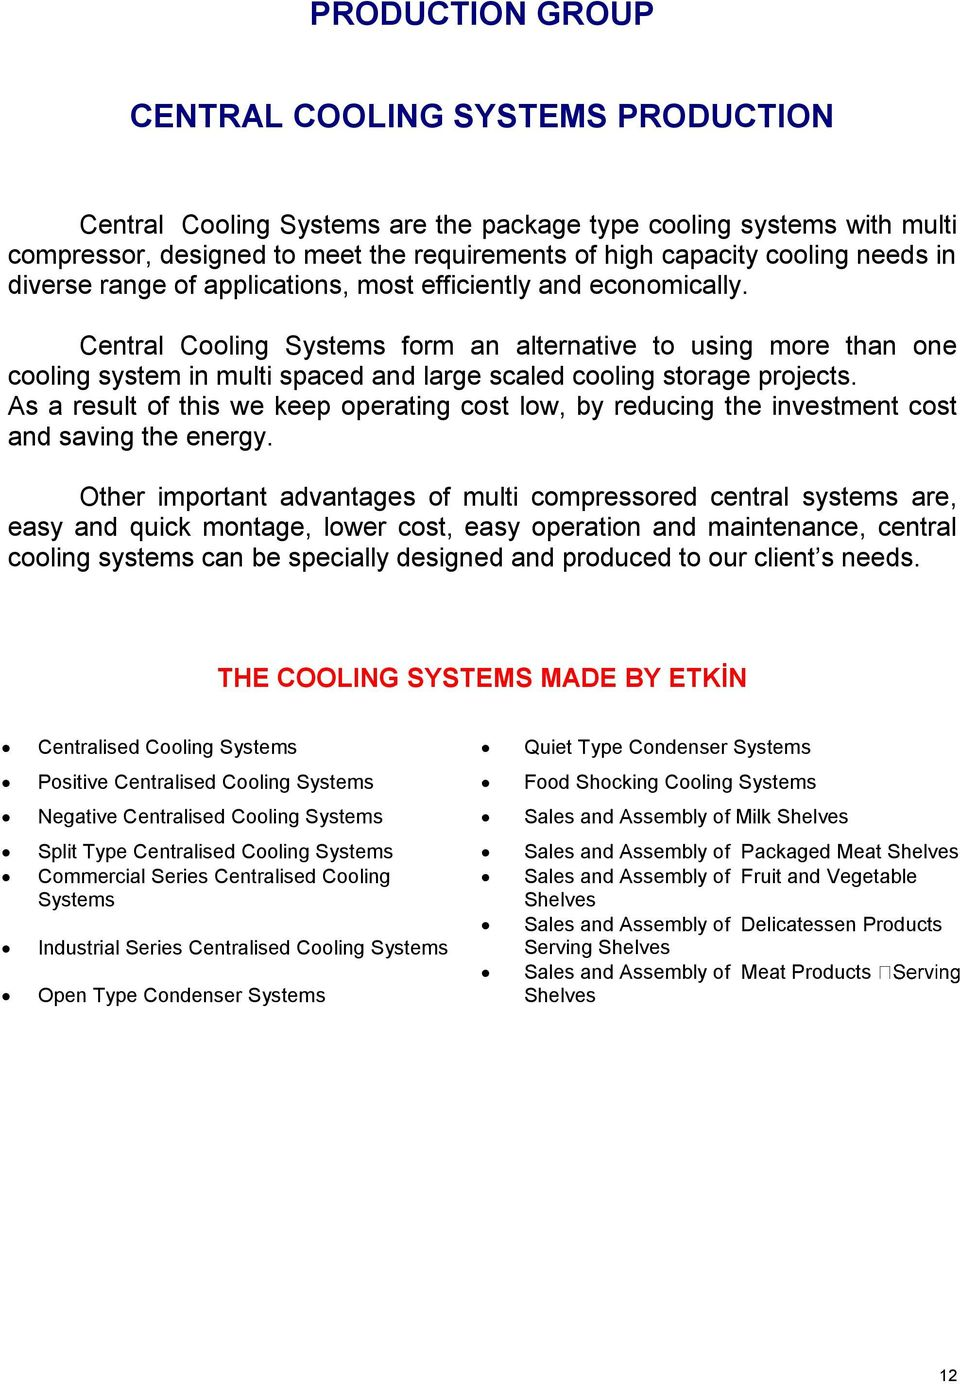 Central Cooling Systems form an alternative to using more than one cooling system in multi spaced and large scaled cooling storage projects.